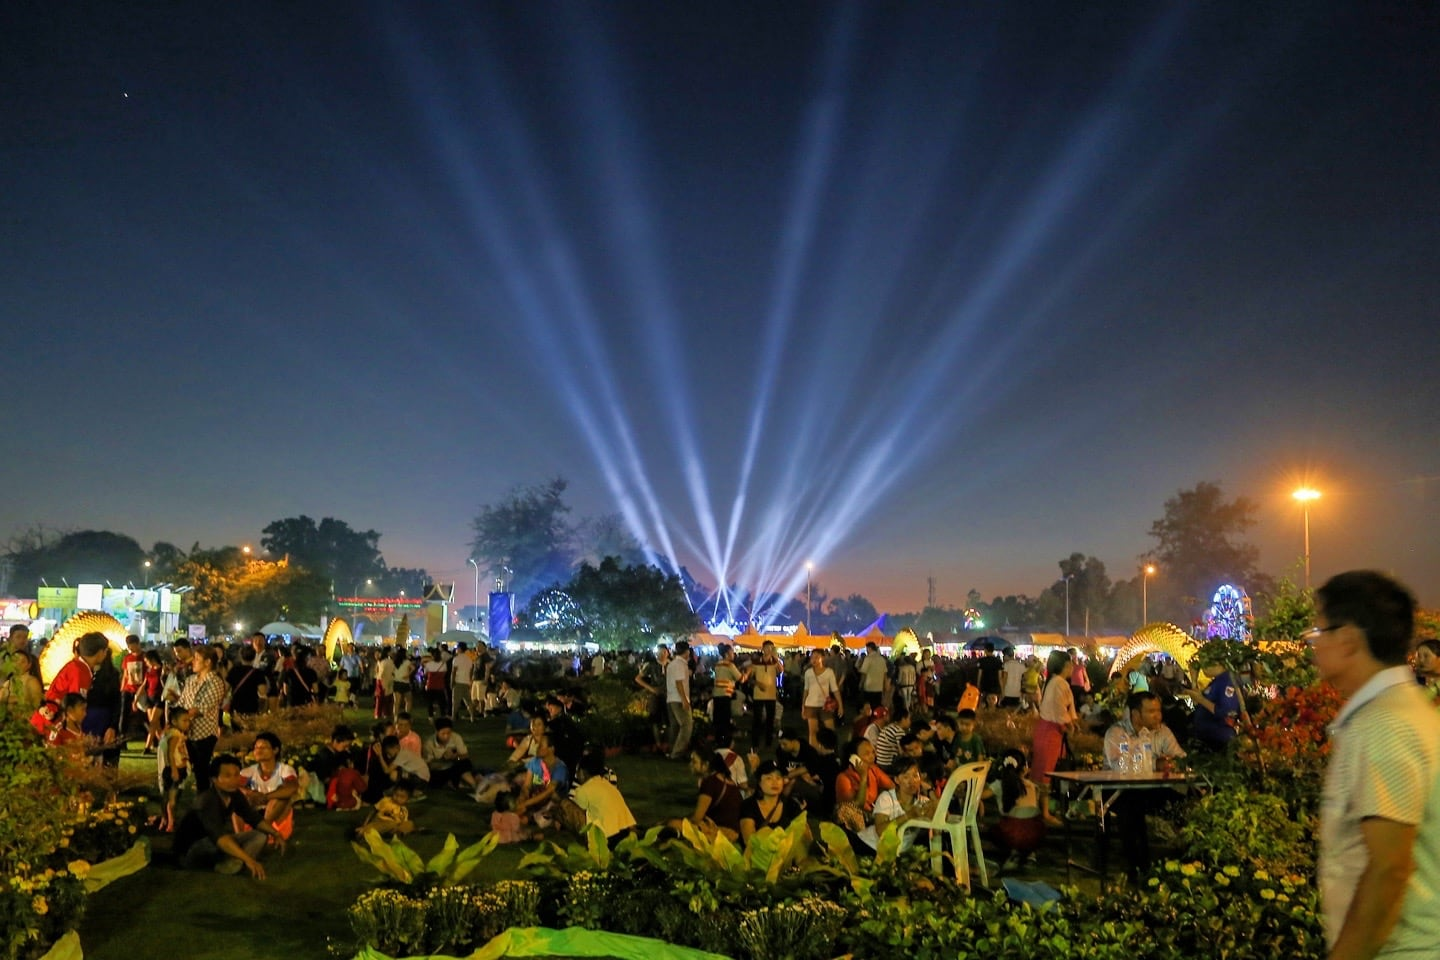 lights over crowd at festival in Laos